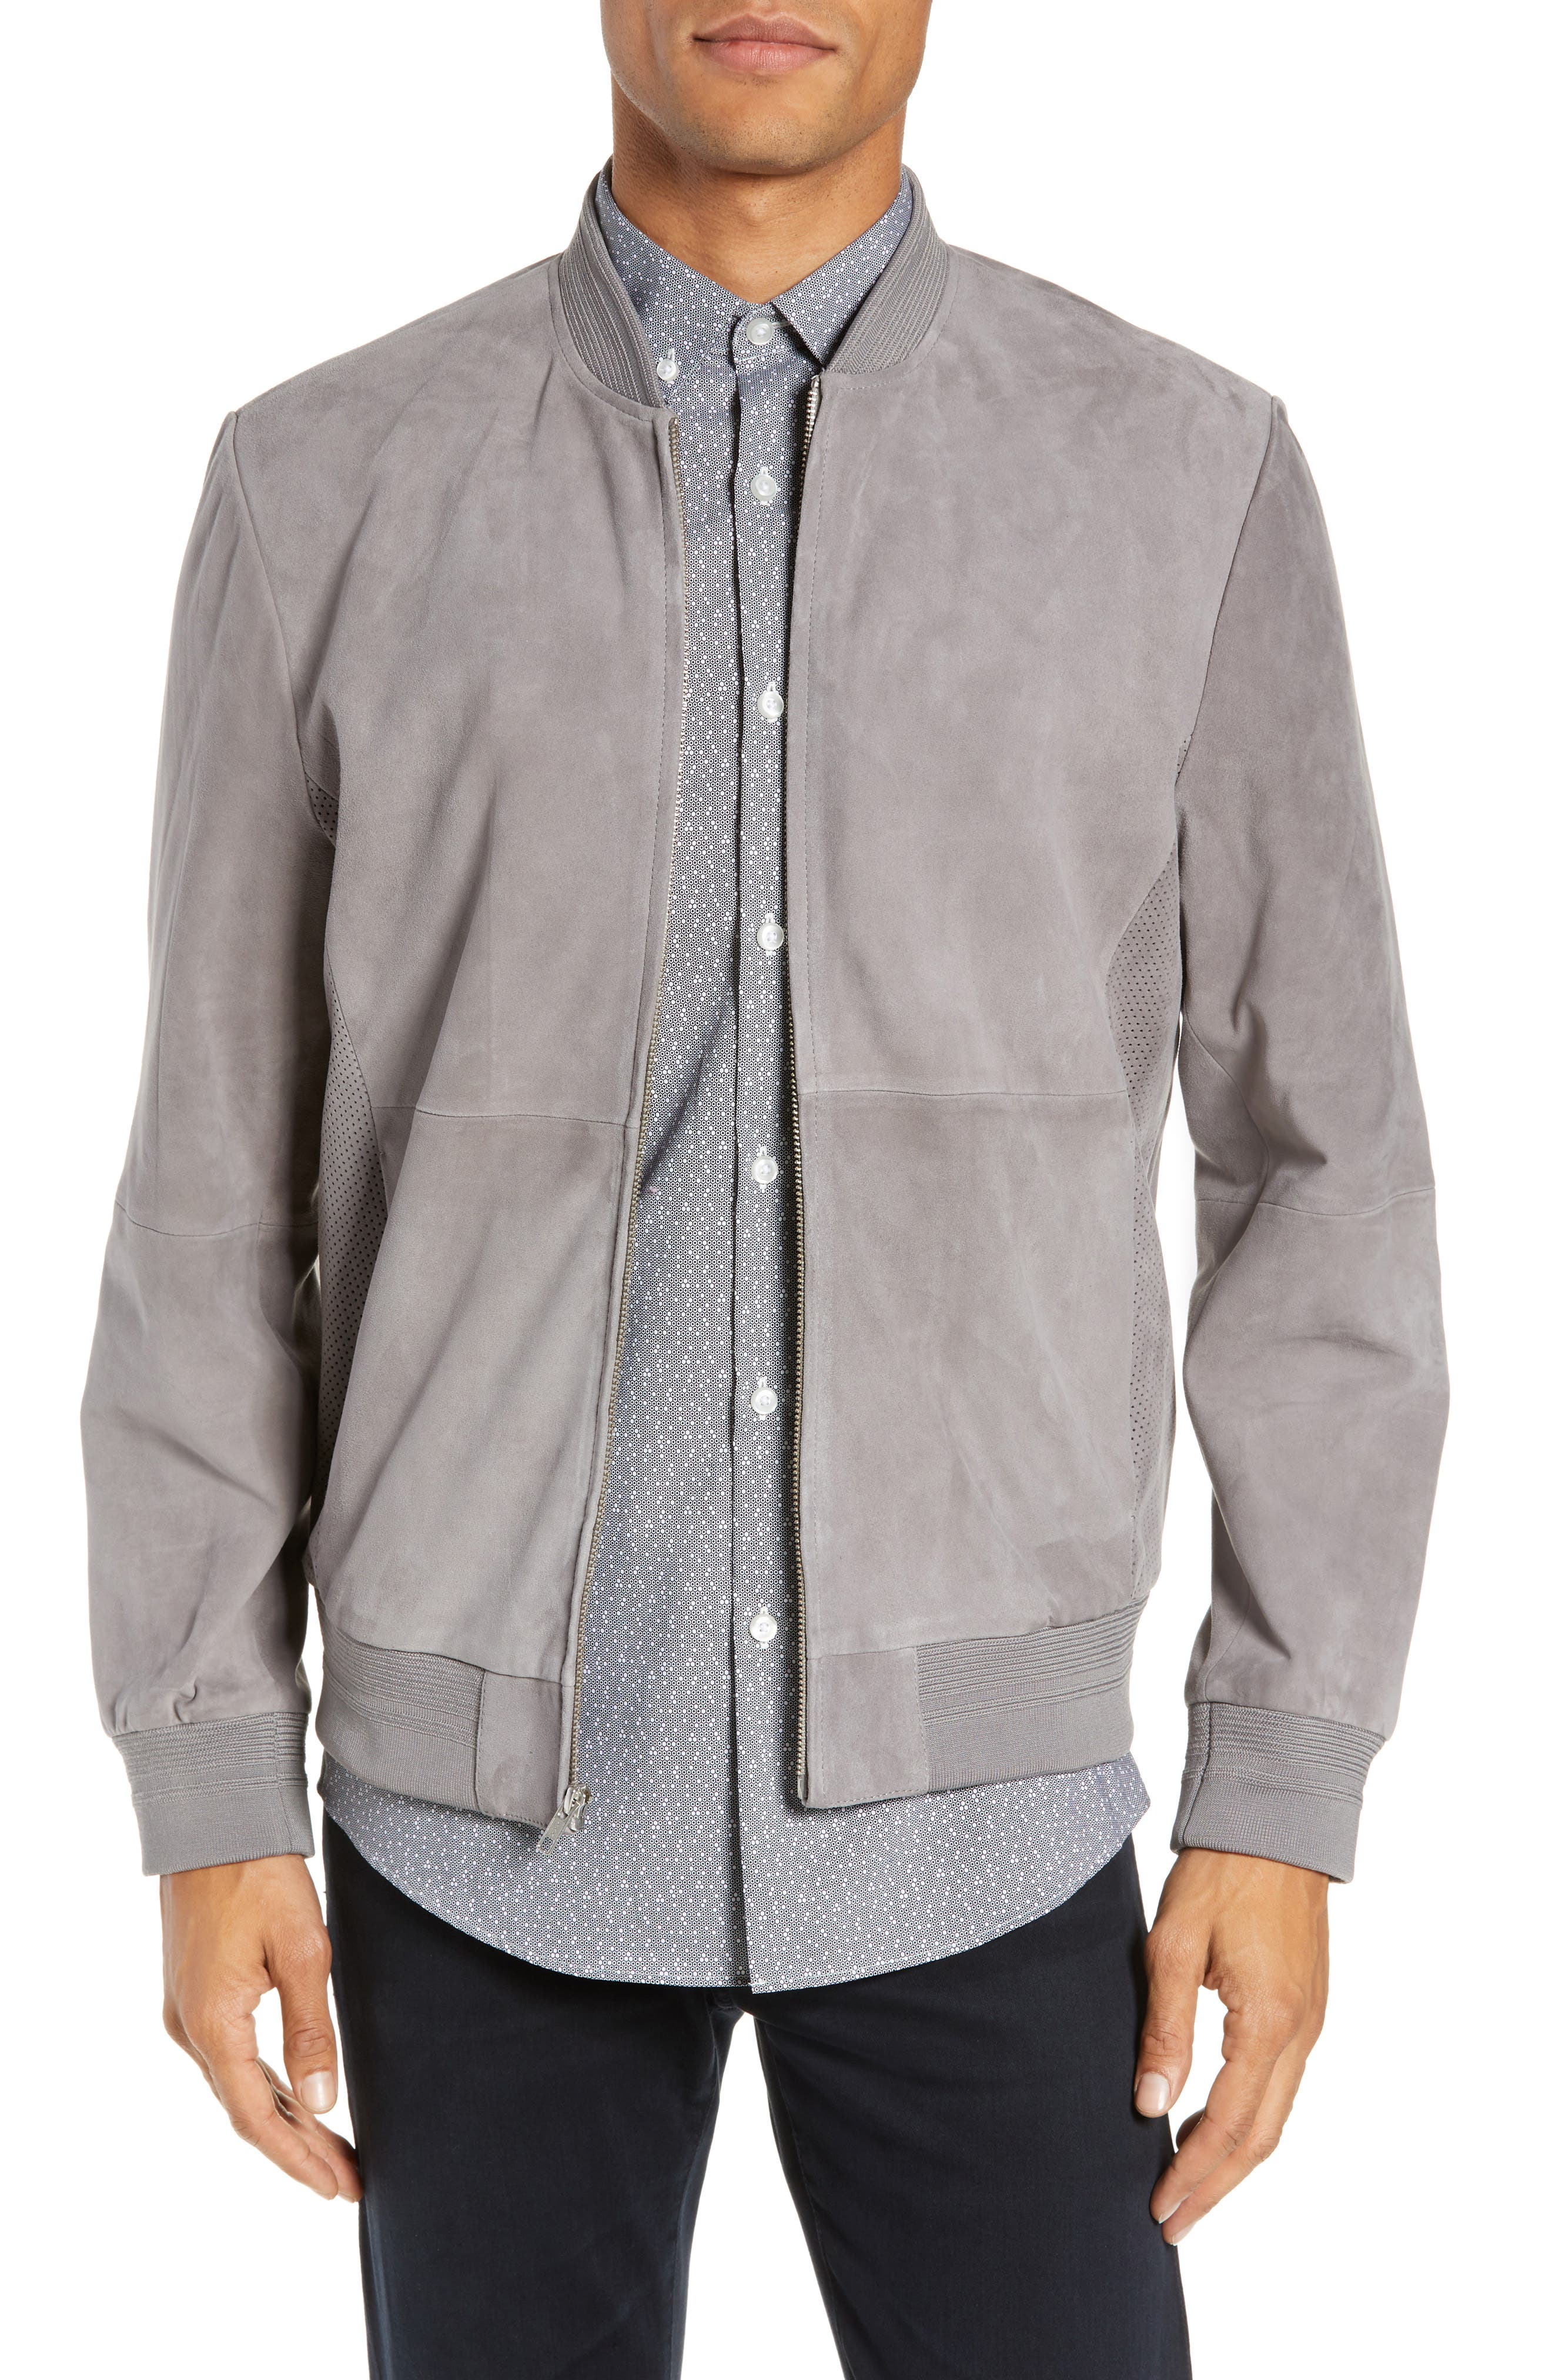 Suede Bomber Jacket,                             Main thumbnail 1, color,                             030